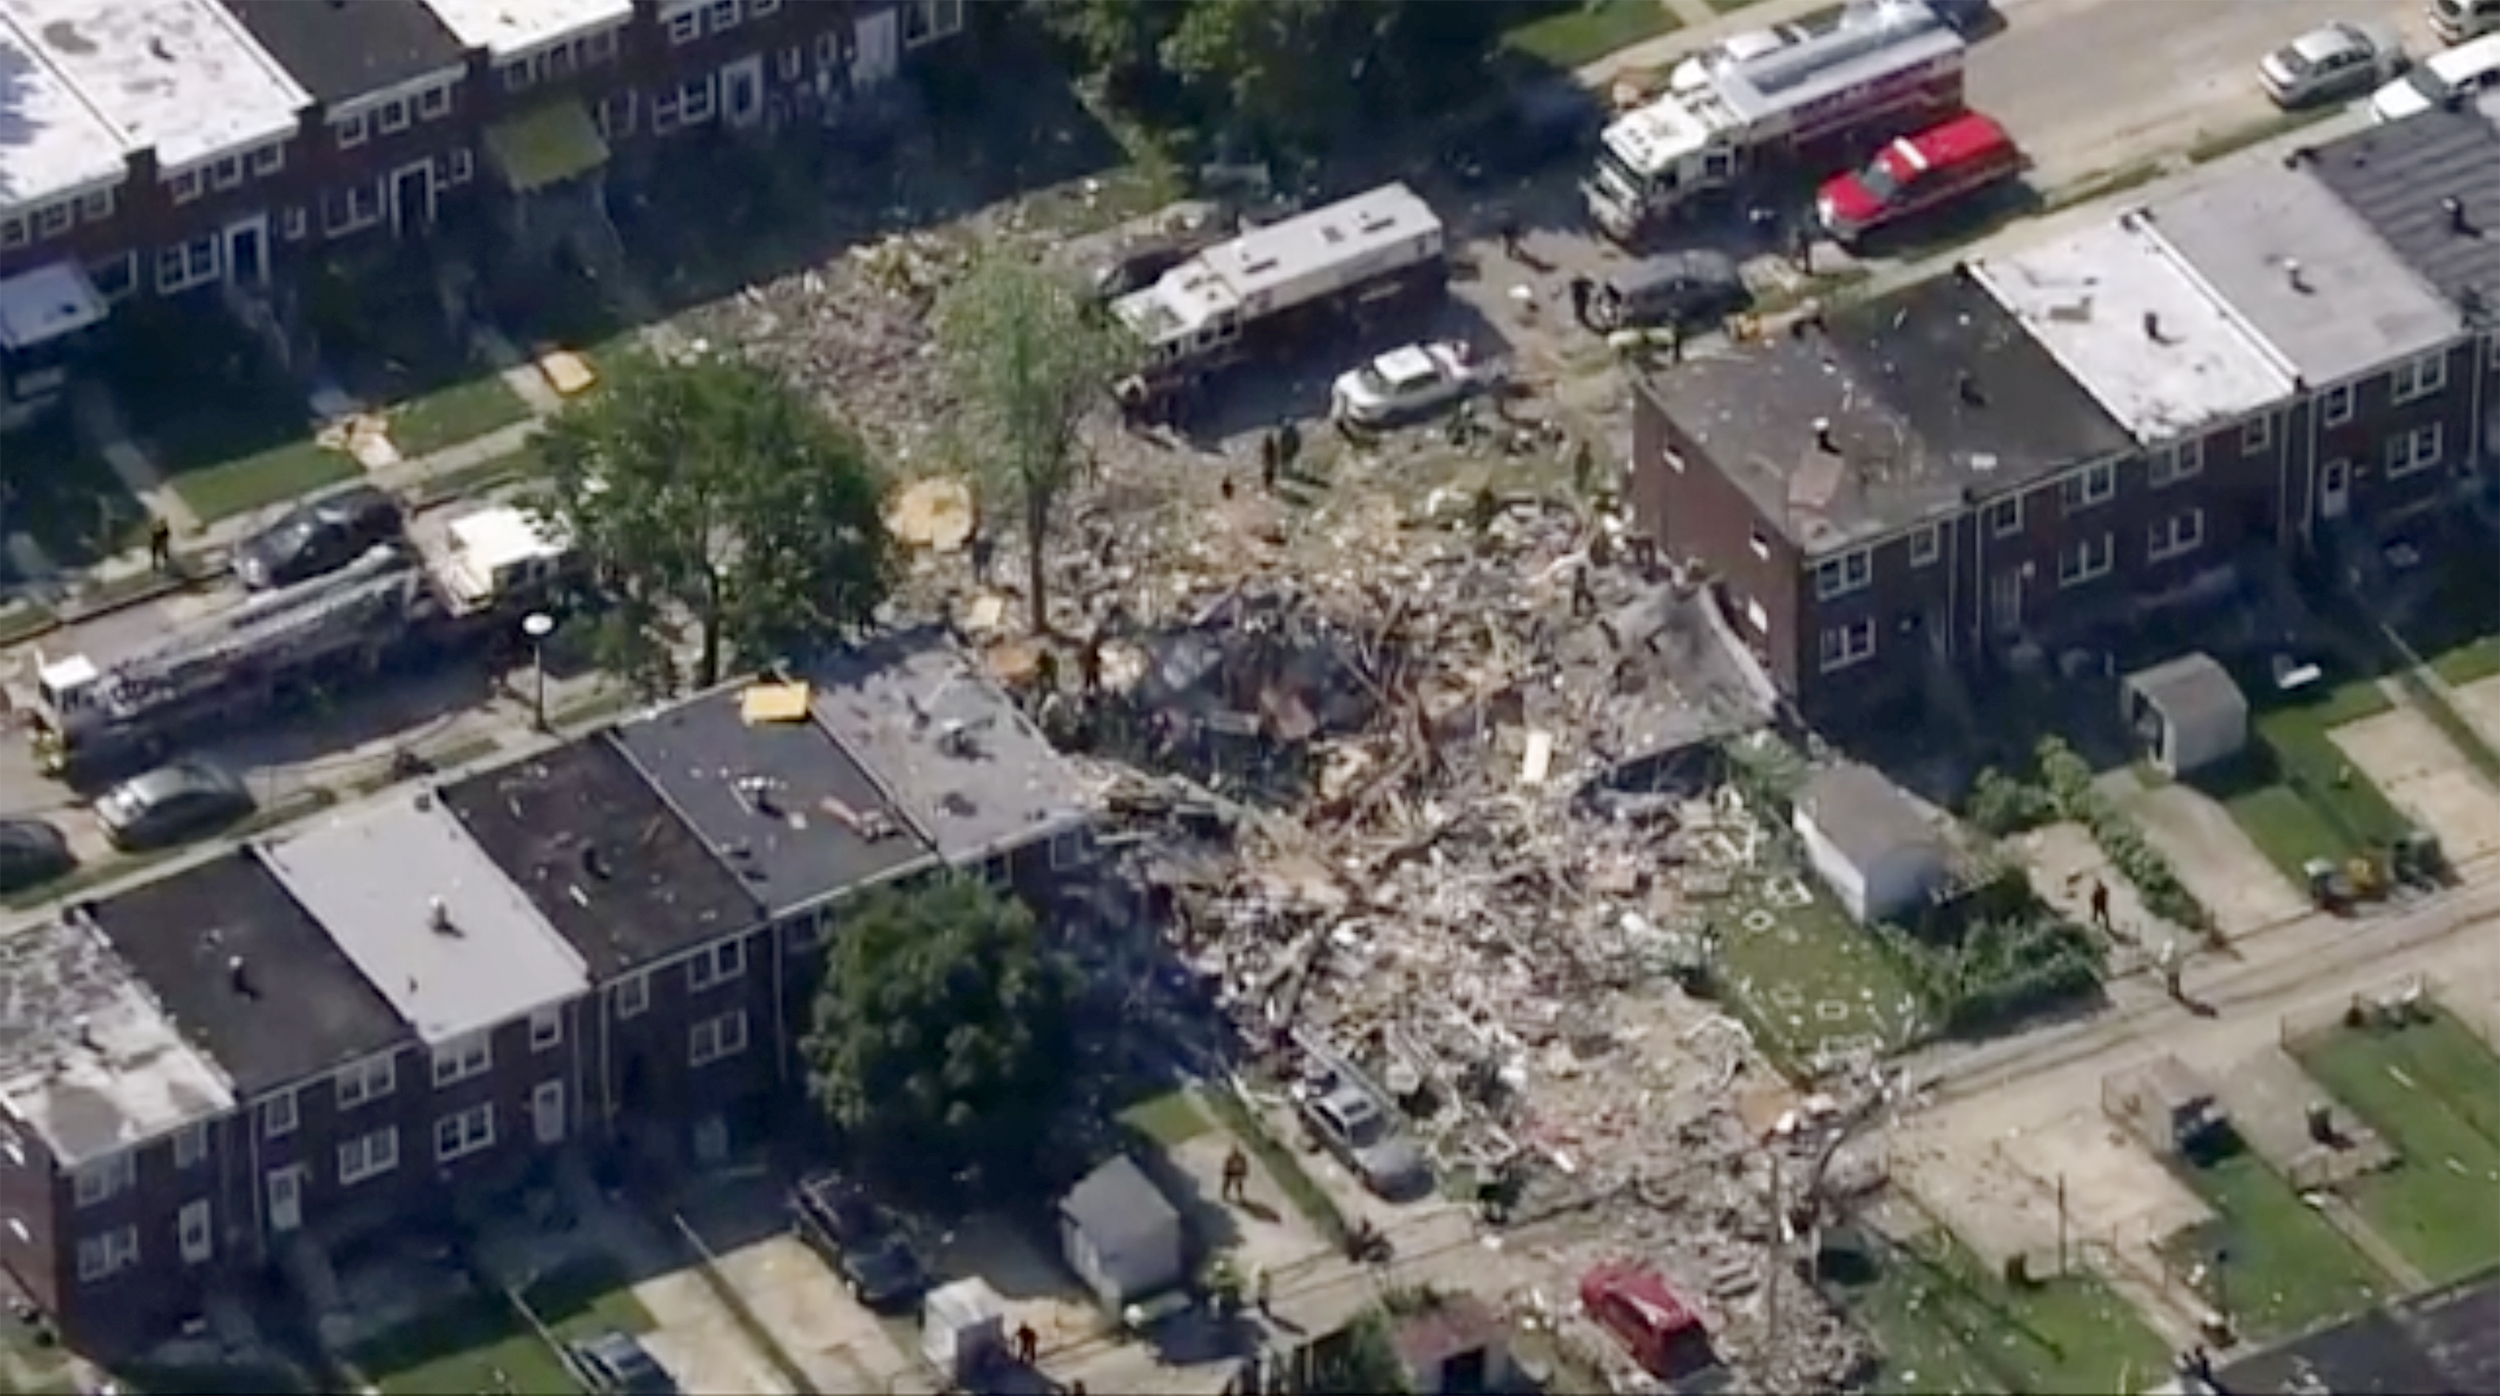 Homes explode in Baltimore, killing 1 and injuring 3 others